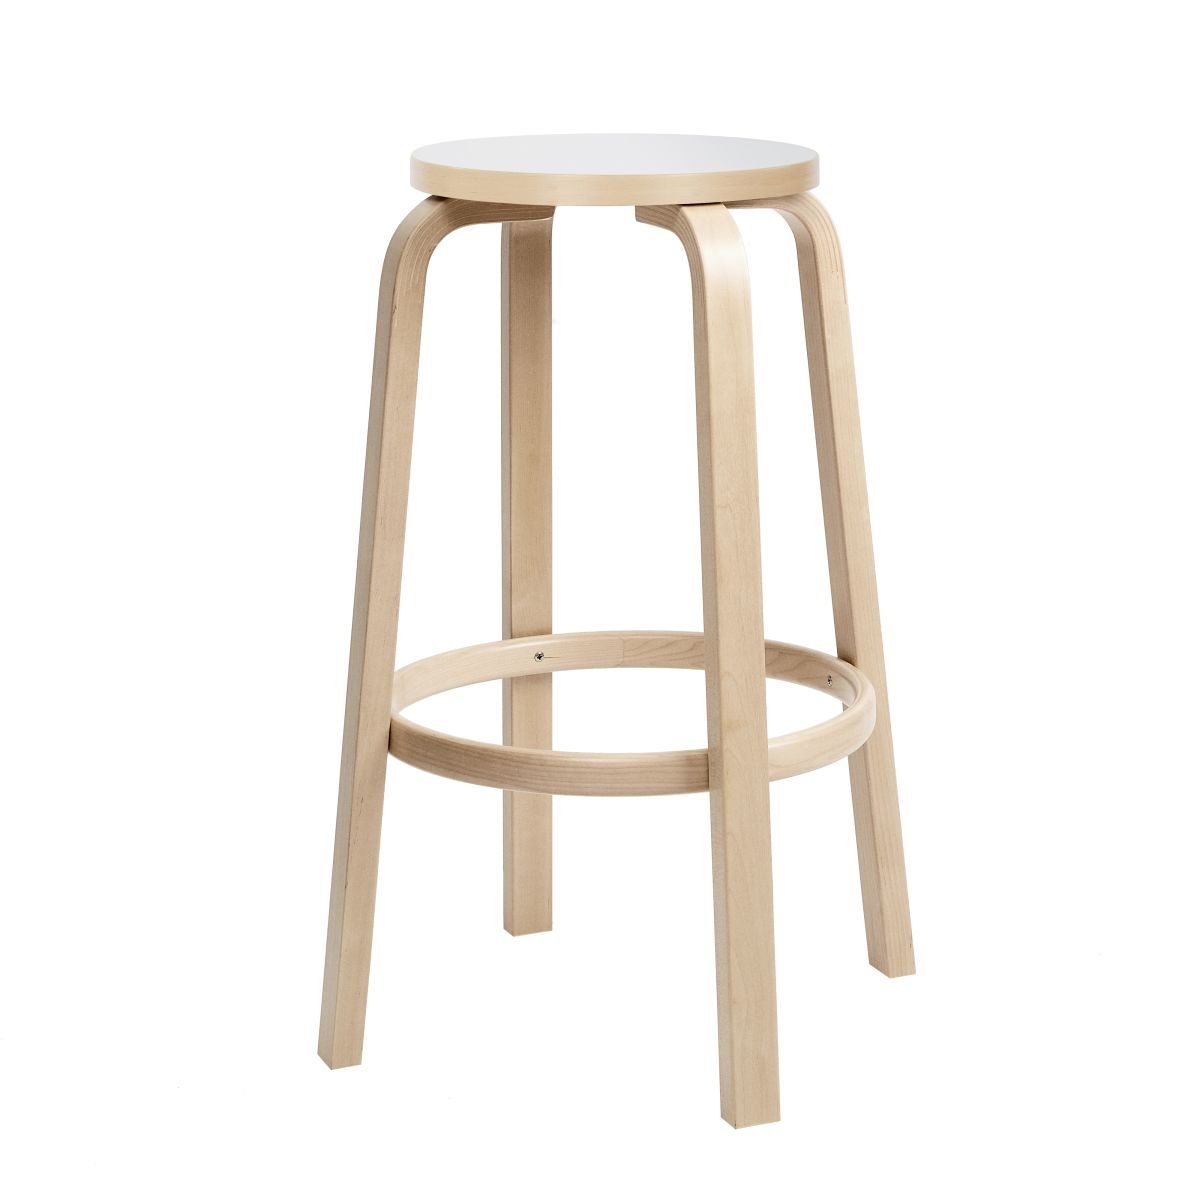 Bar-Stool-64-75Cm-Legs-Birch_Top-White-Hpl_Srgb-2430525